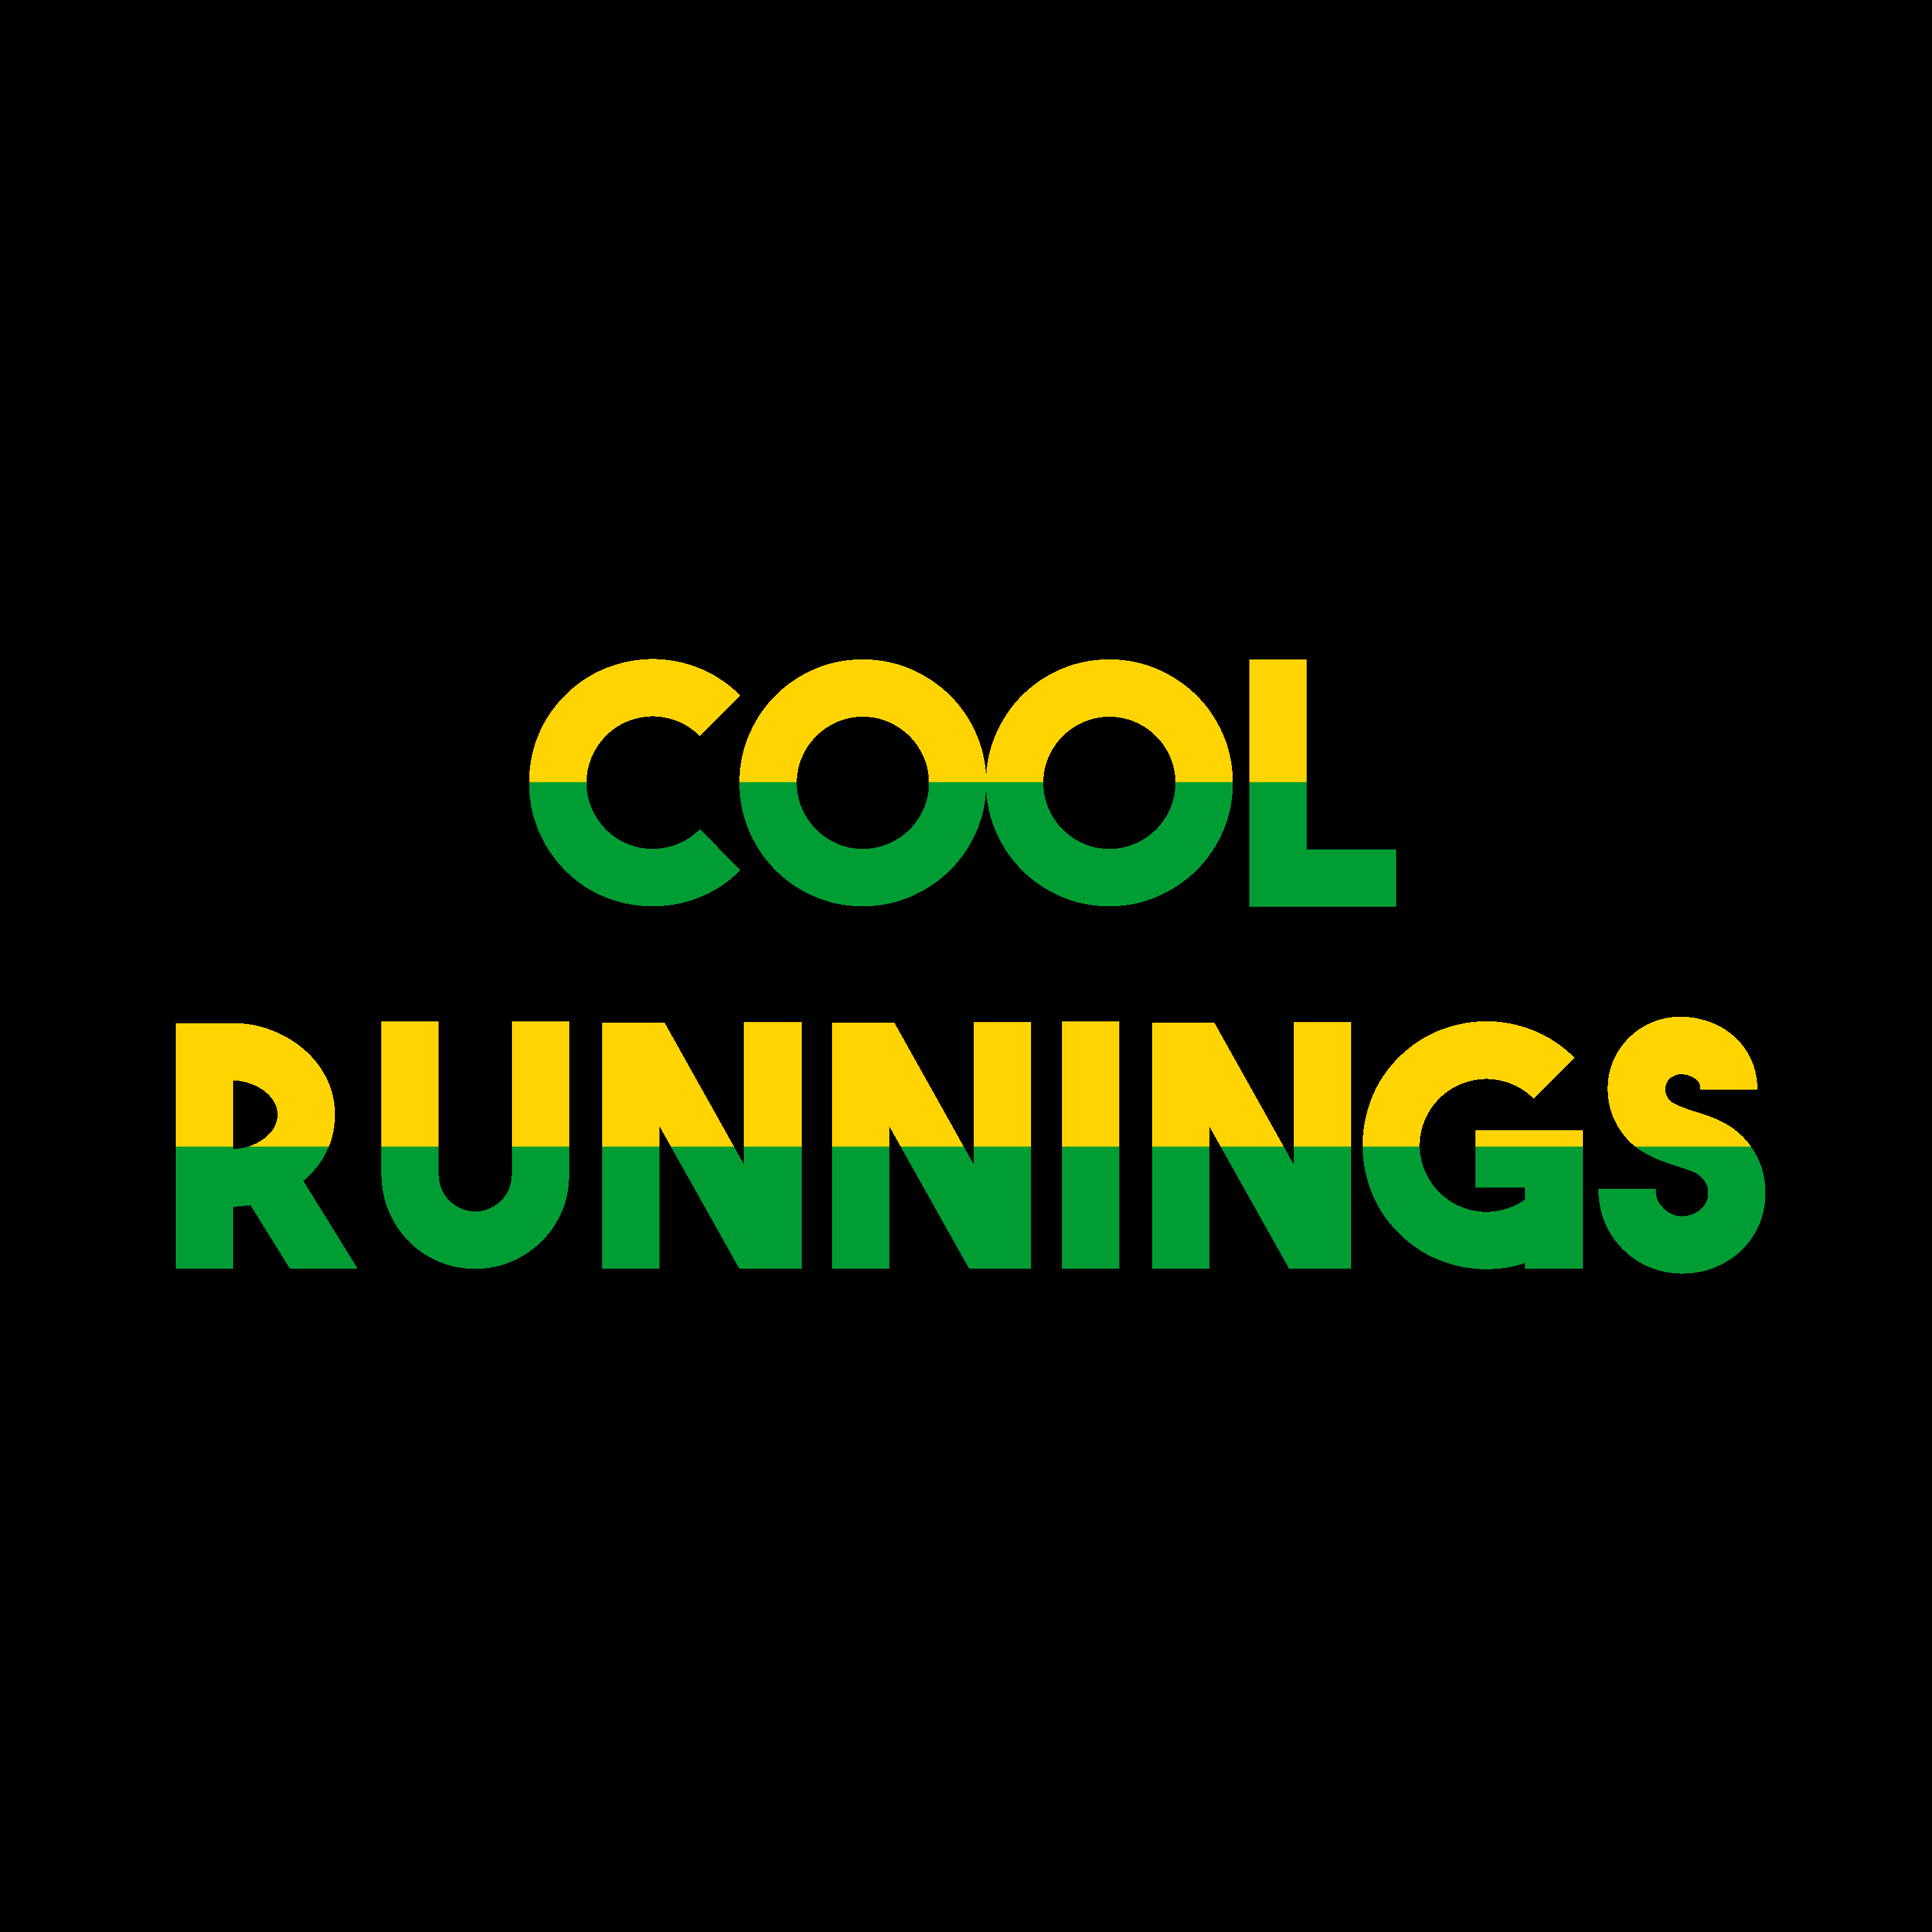 KdFg013 Cool Runnings